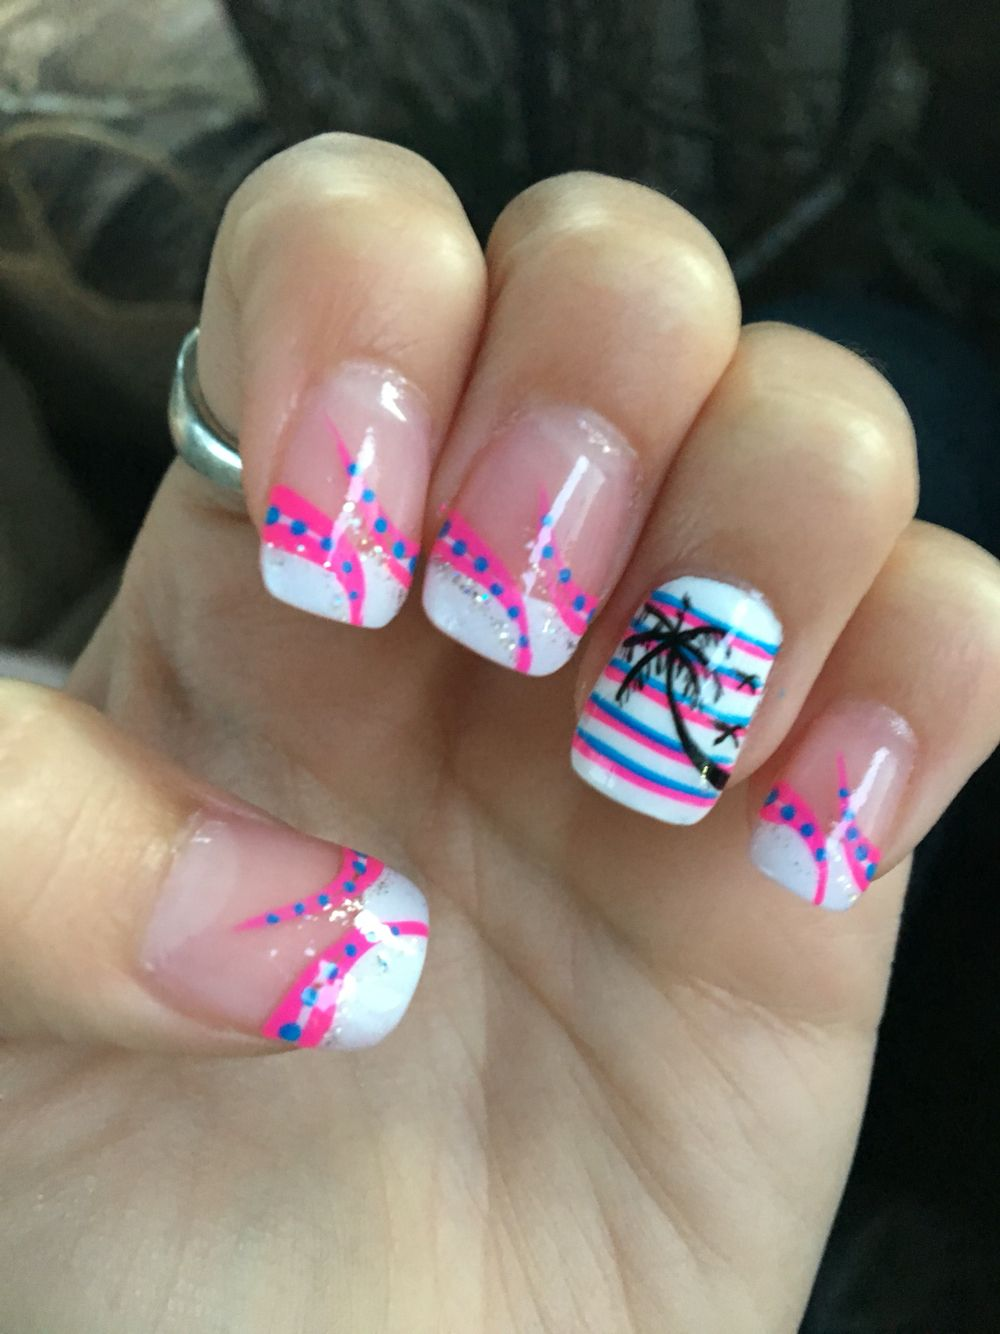 Summer Nail Designs Pink And Blue Strips Palm Tree French Manicure Nail Designs Summer Palm Tree Nails Cruise Nails